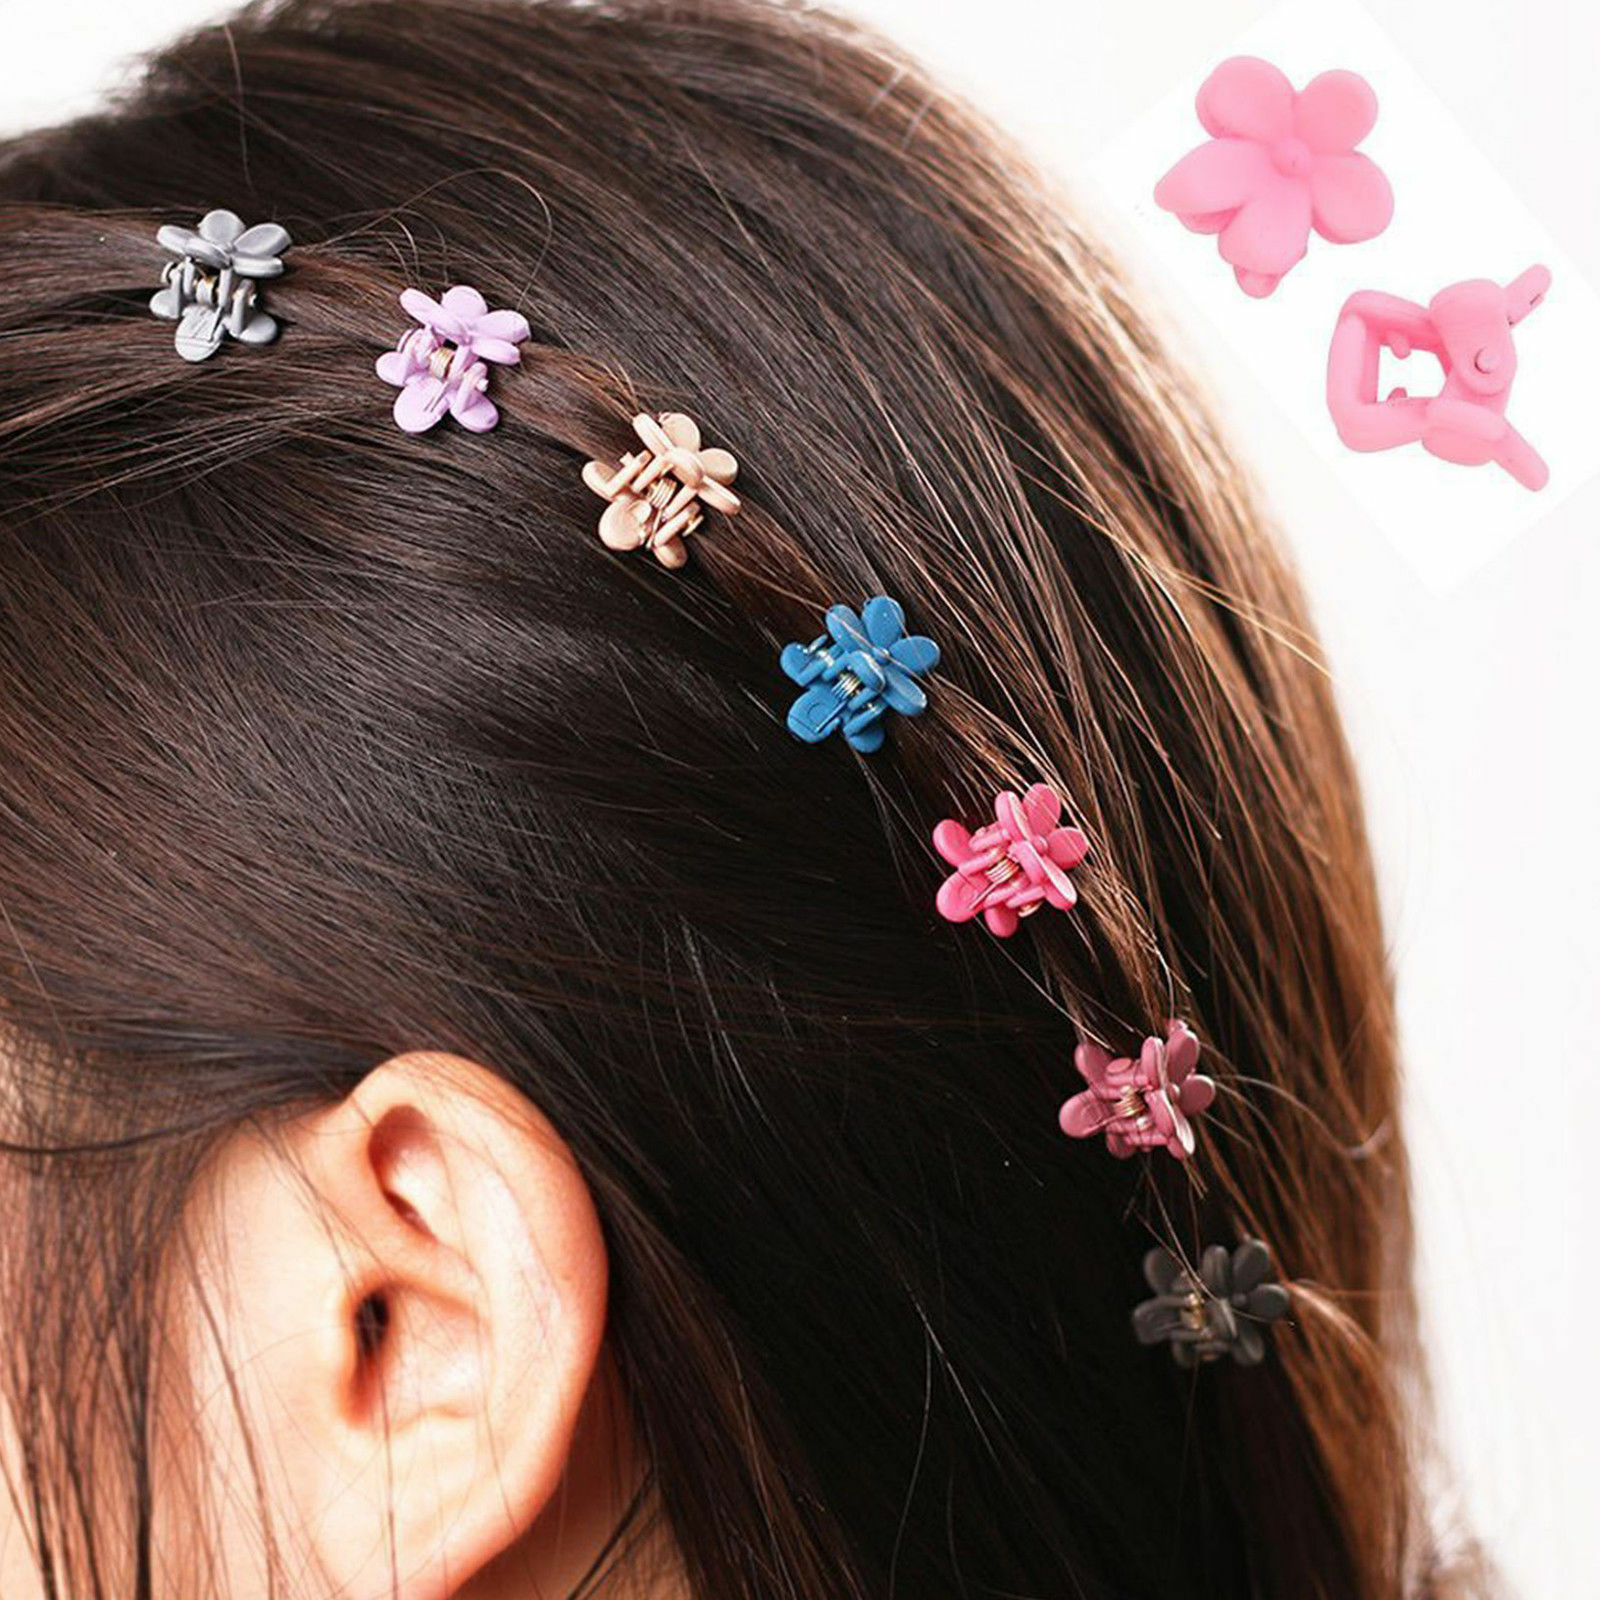 30x//Set Baby Girls Hairpins Mini Claw Hair Clip Clamp Flower Plastic Clips Tool